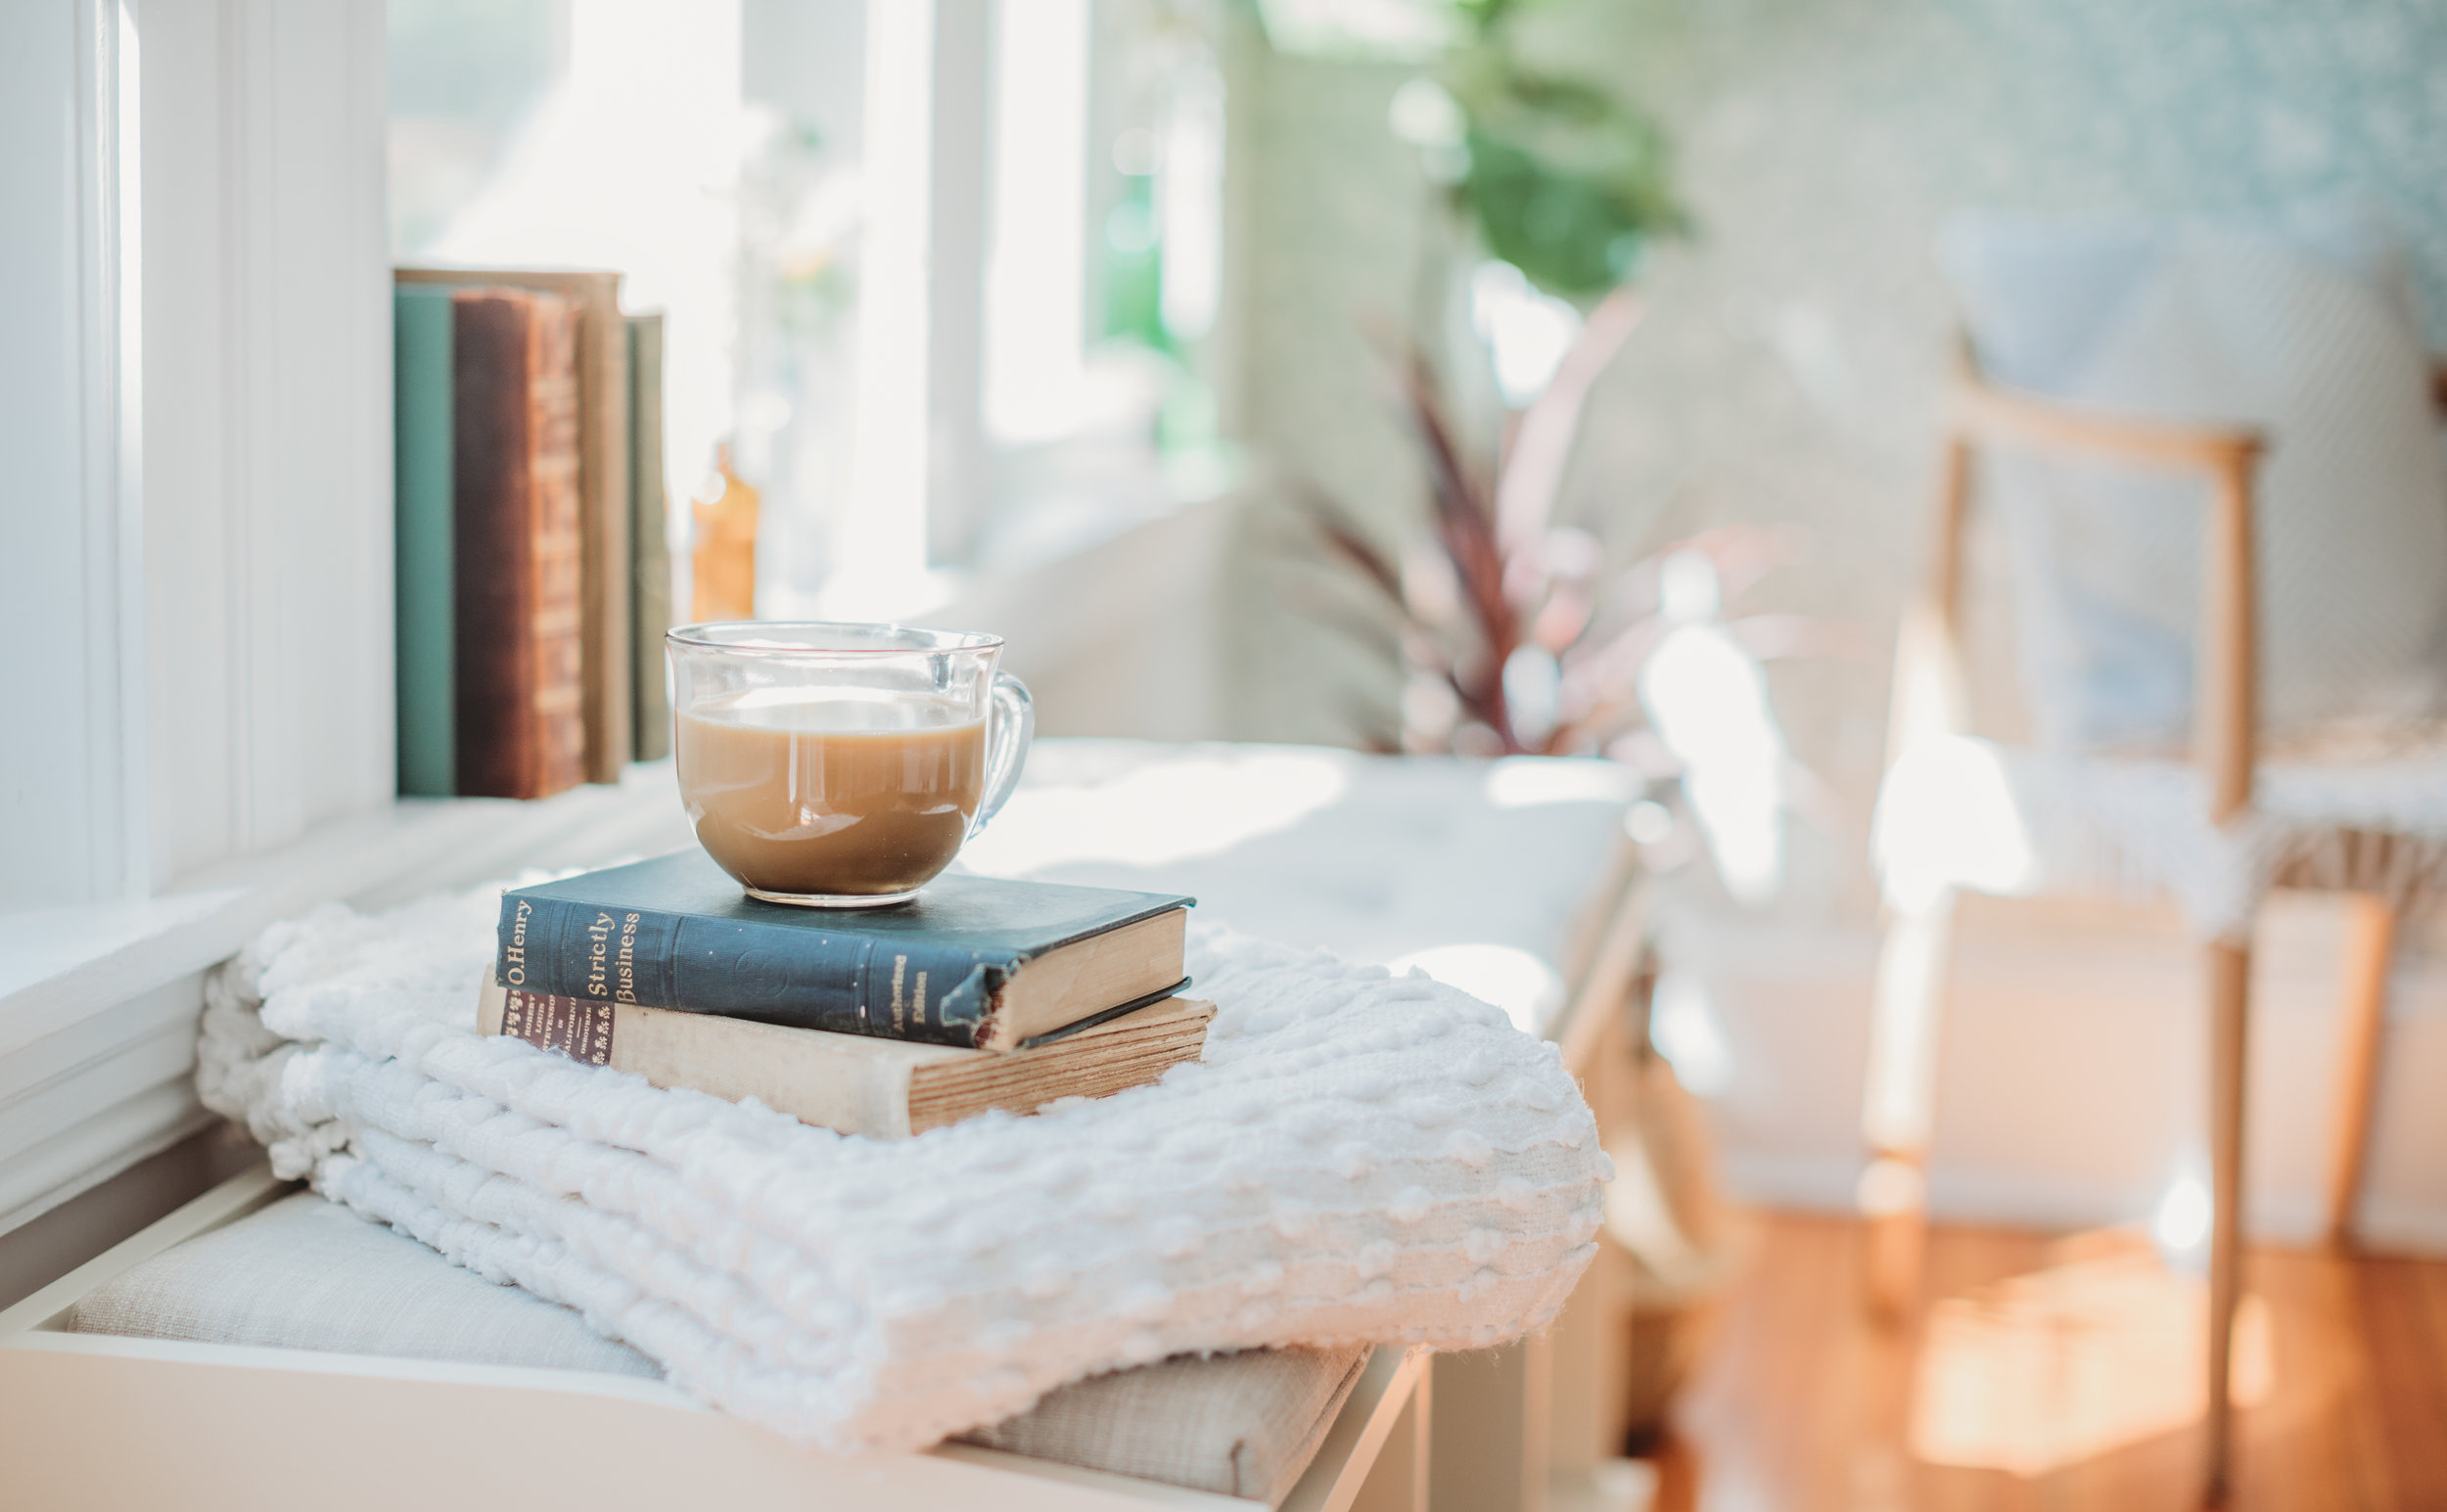 Coffee cup on a stack of books in a bright and sunny office. Boston branding photographer Joy LeDuc shares ideas on props to include in your personal branding photo session.